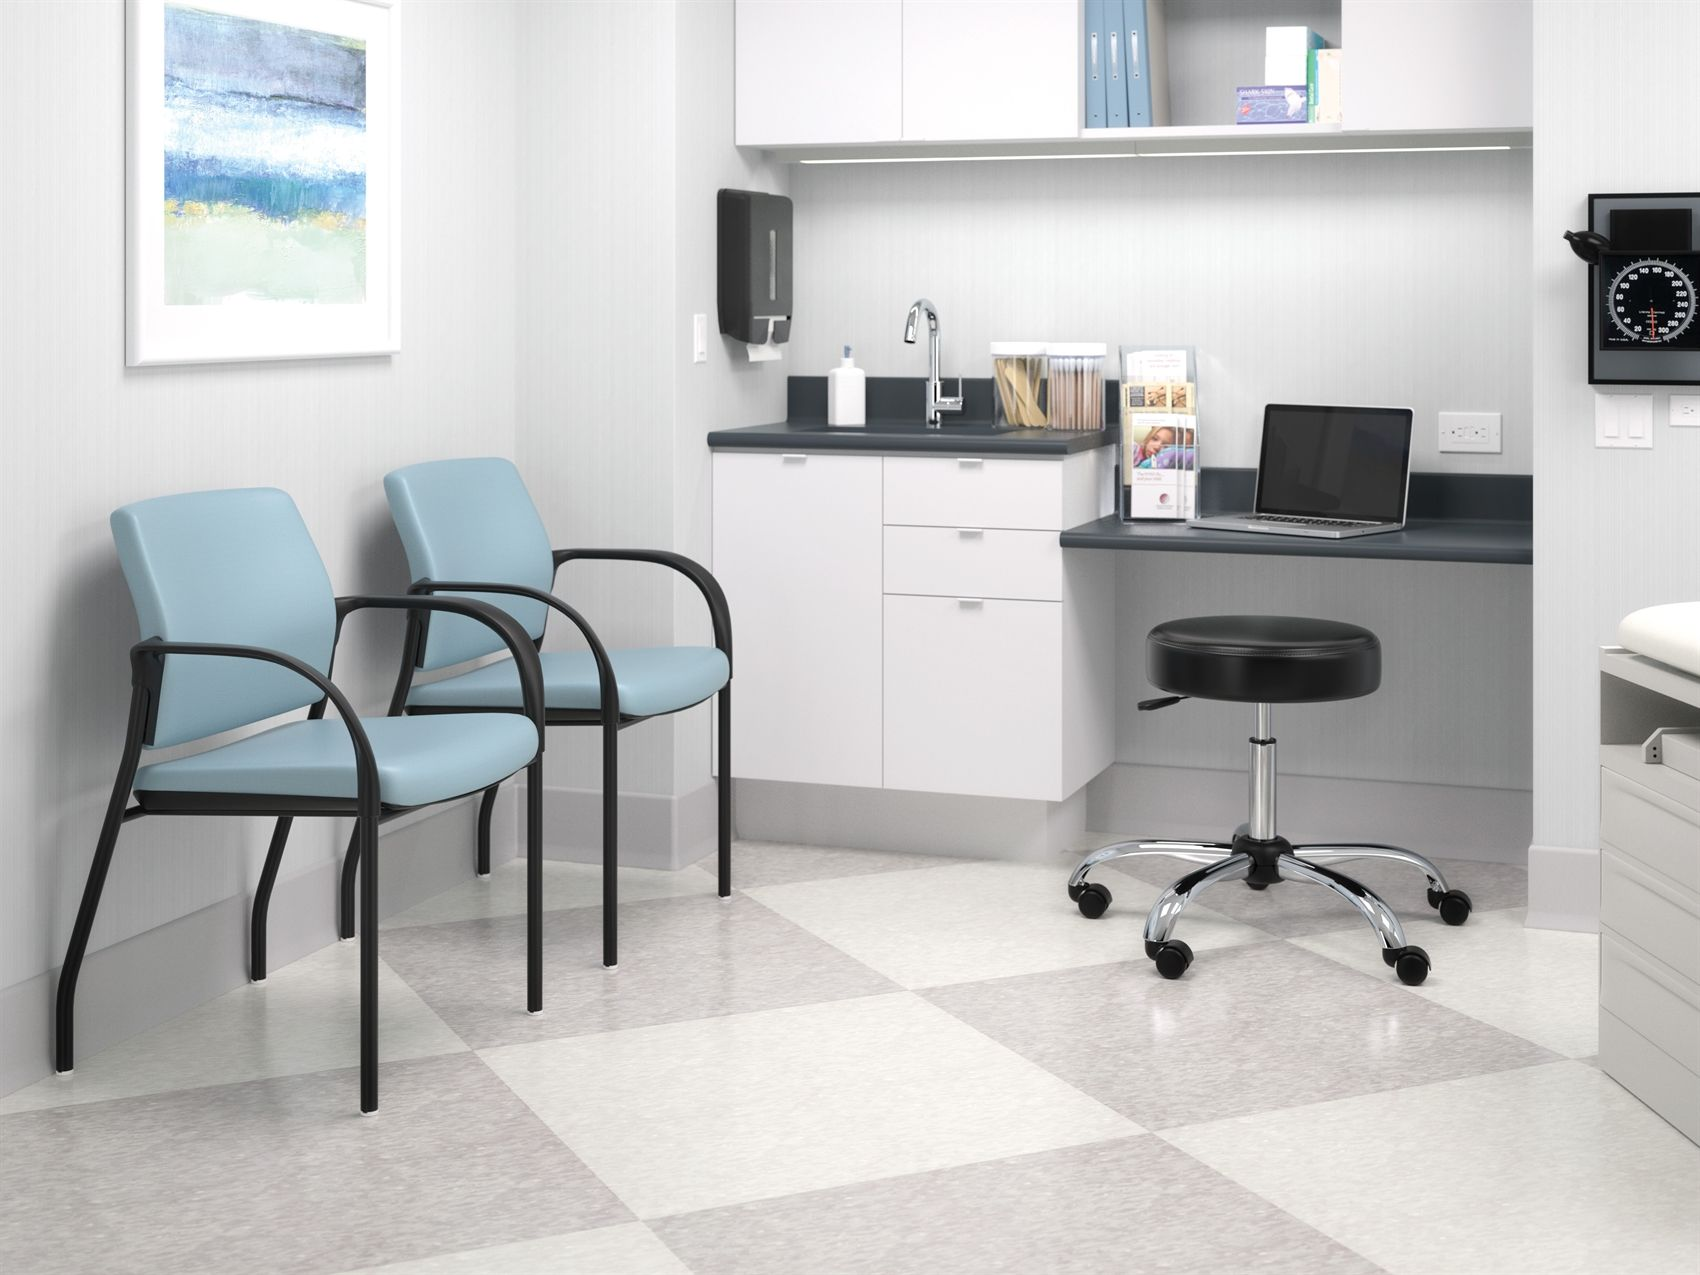 Hon healthcare exam room learn more at for Furniture clinic